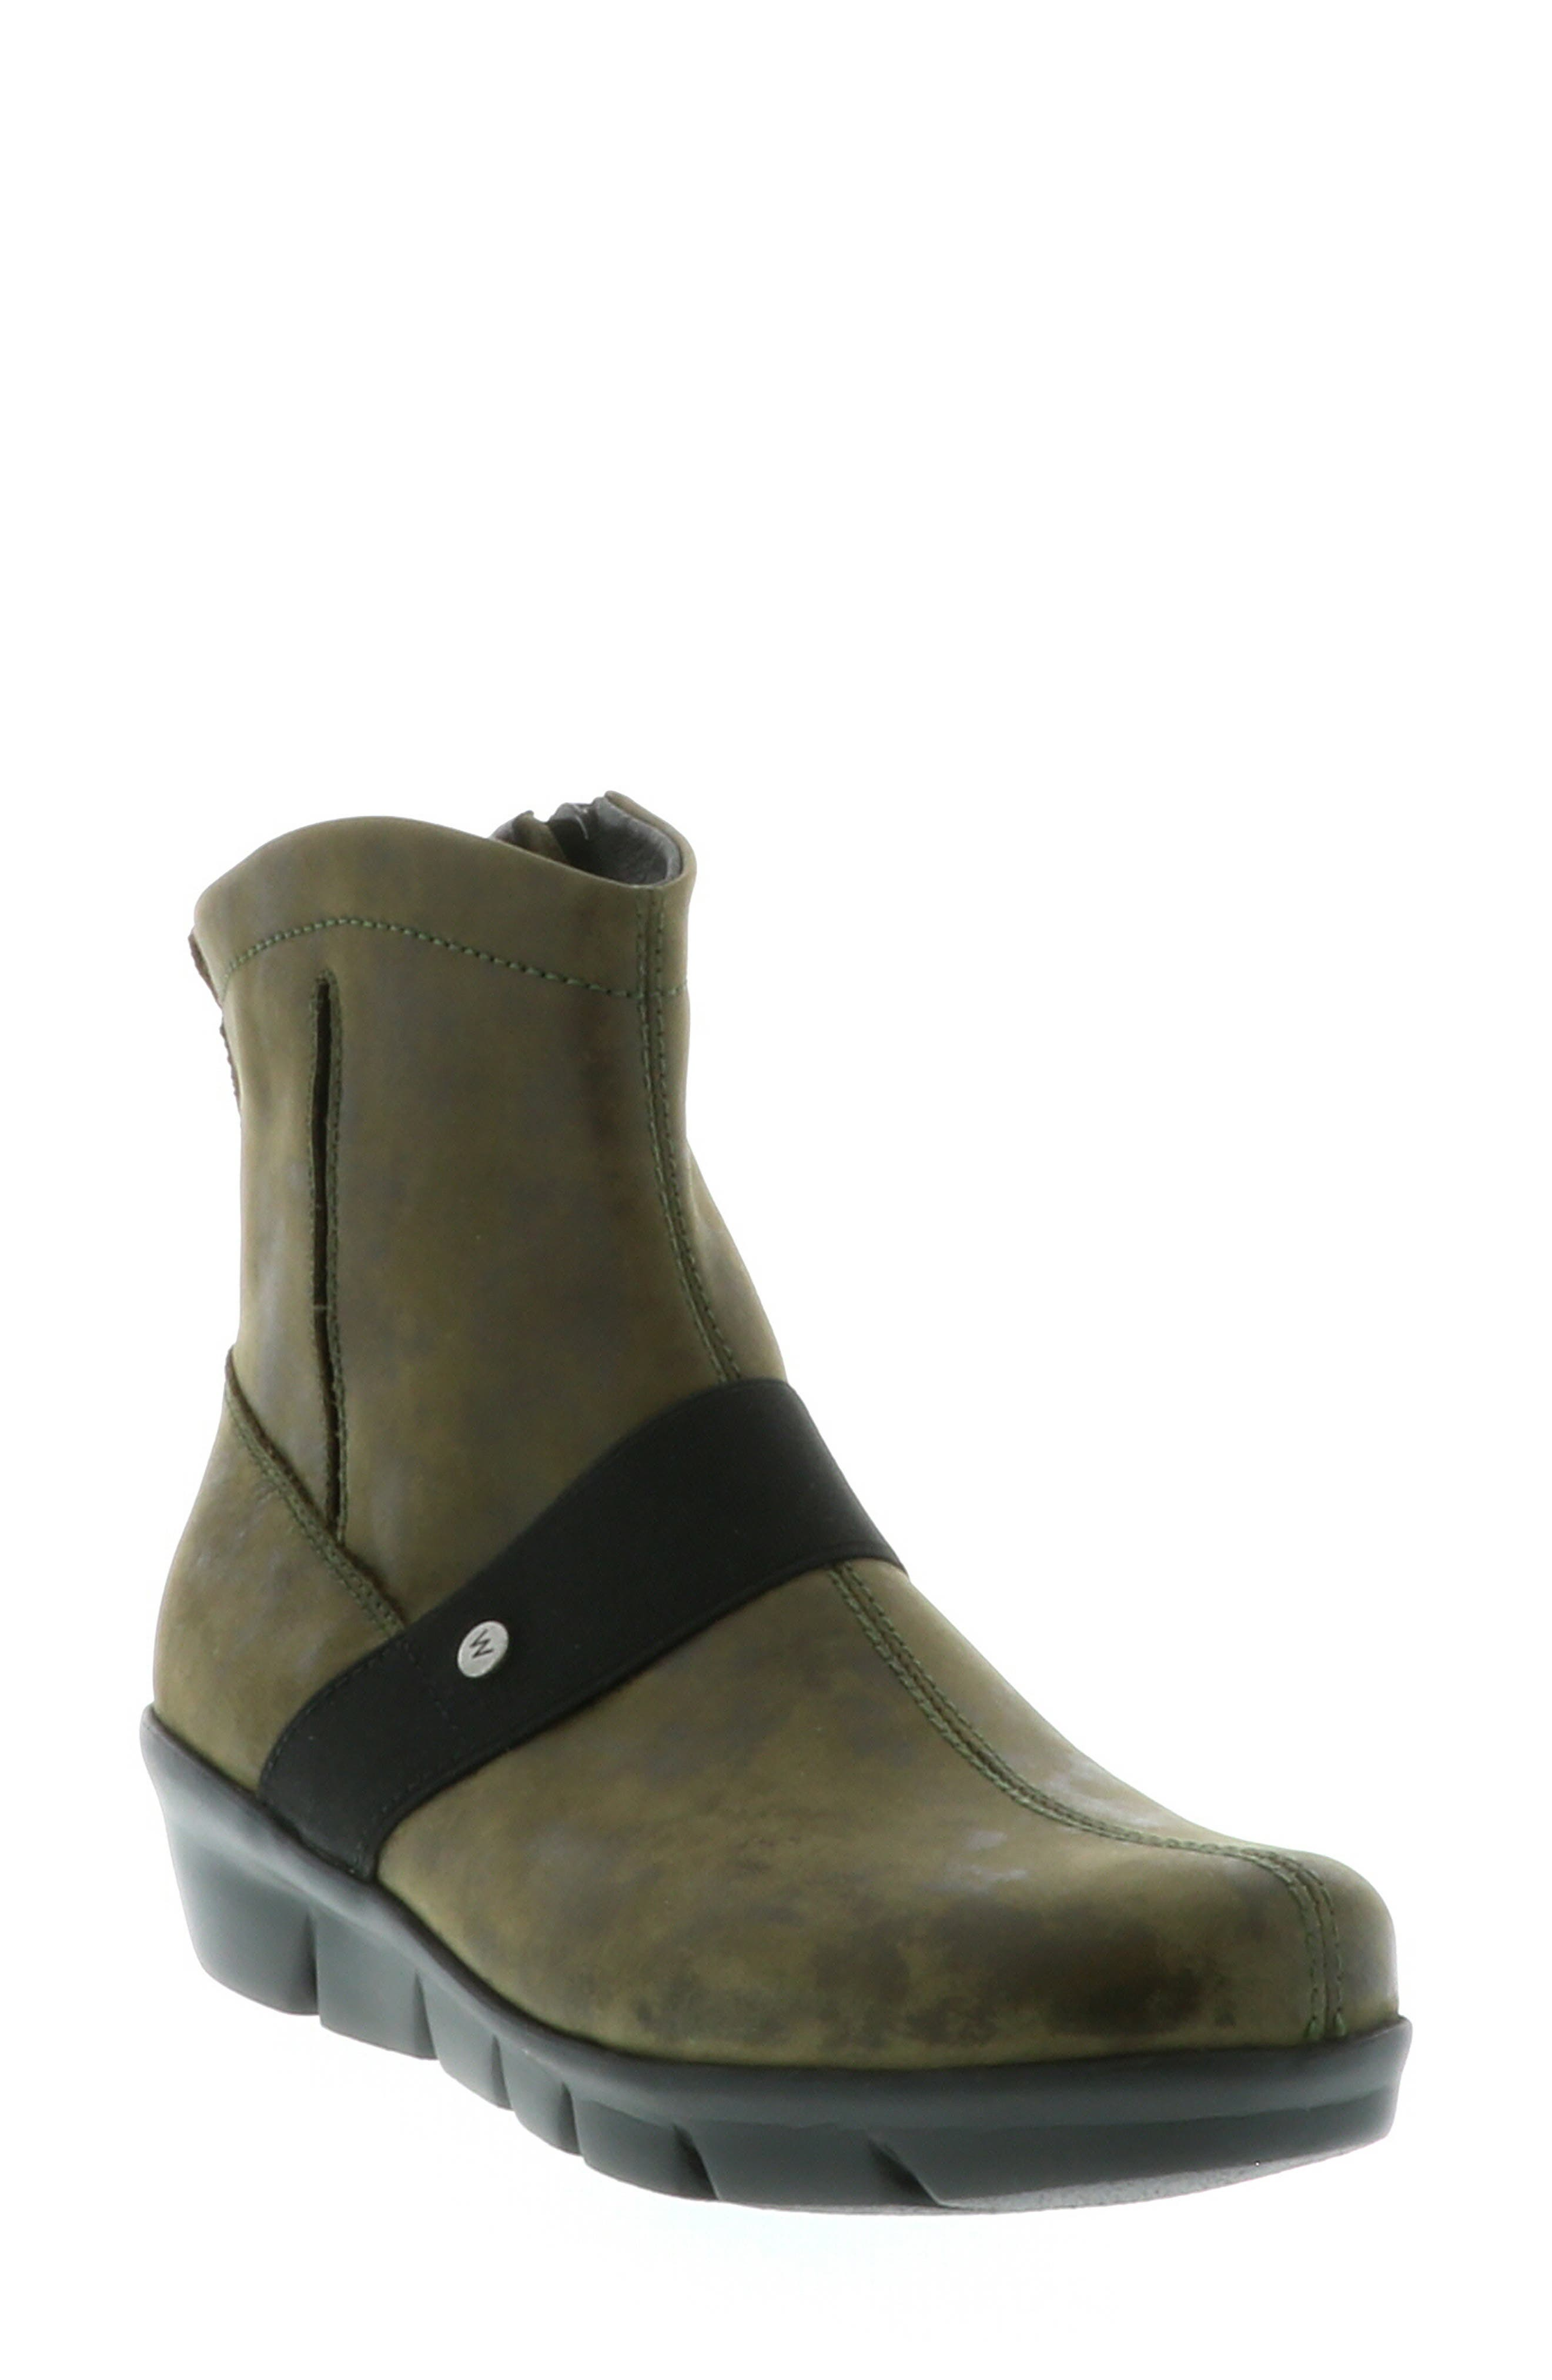 Wolky Omni Wedge Bootie - Green